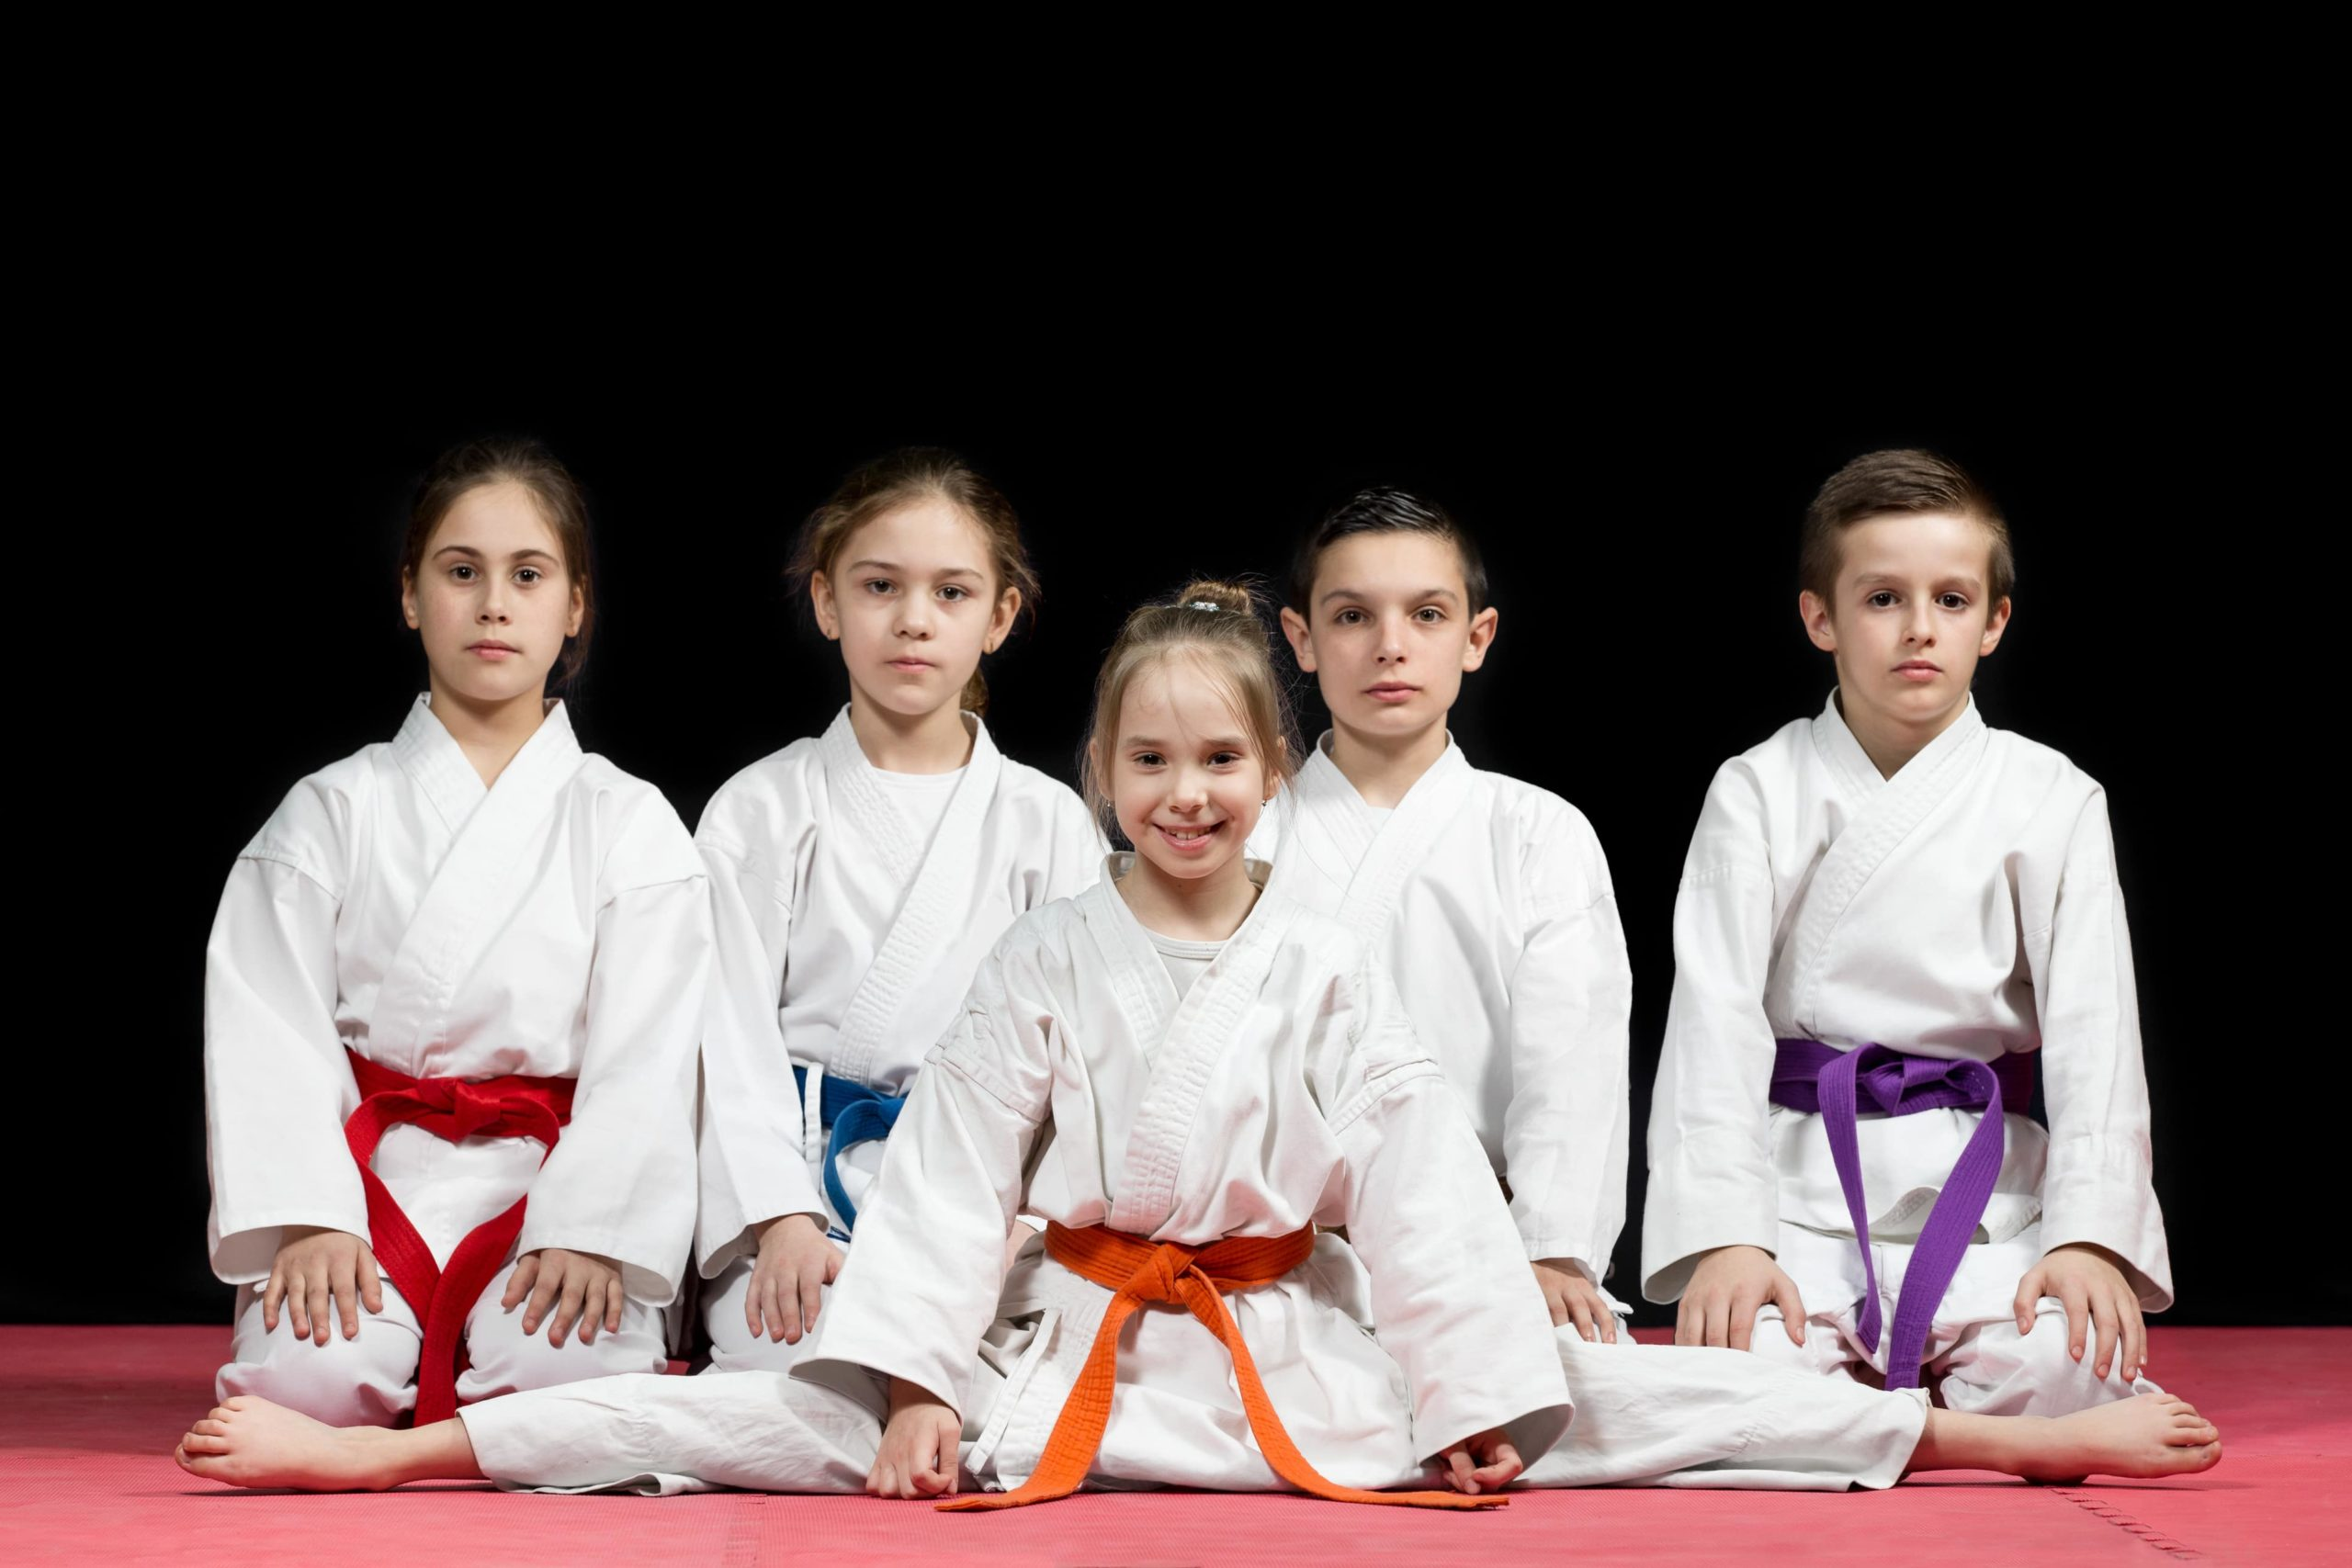 smiling kids in karate uniforms